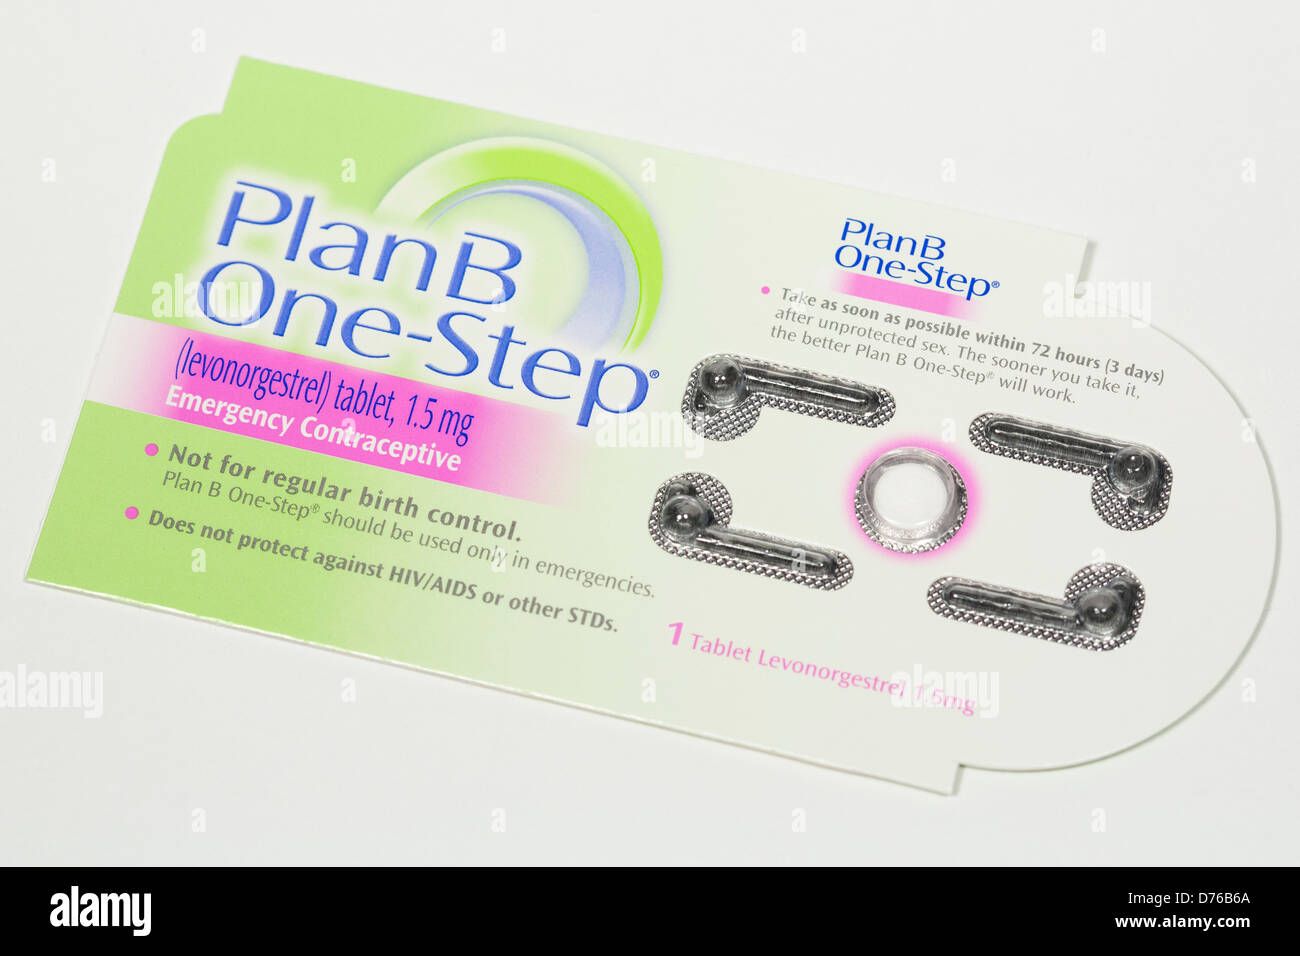 A Plan B (levonorgestrel) emergency contraceptive pill, also known as the 'Morning after pill' - Stock Image